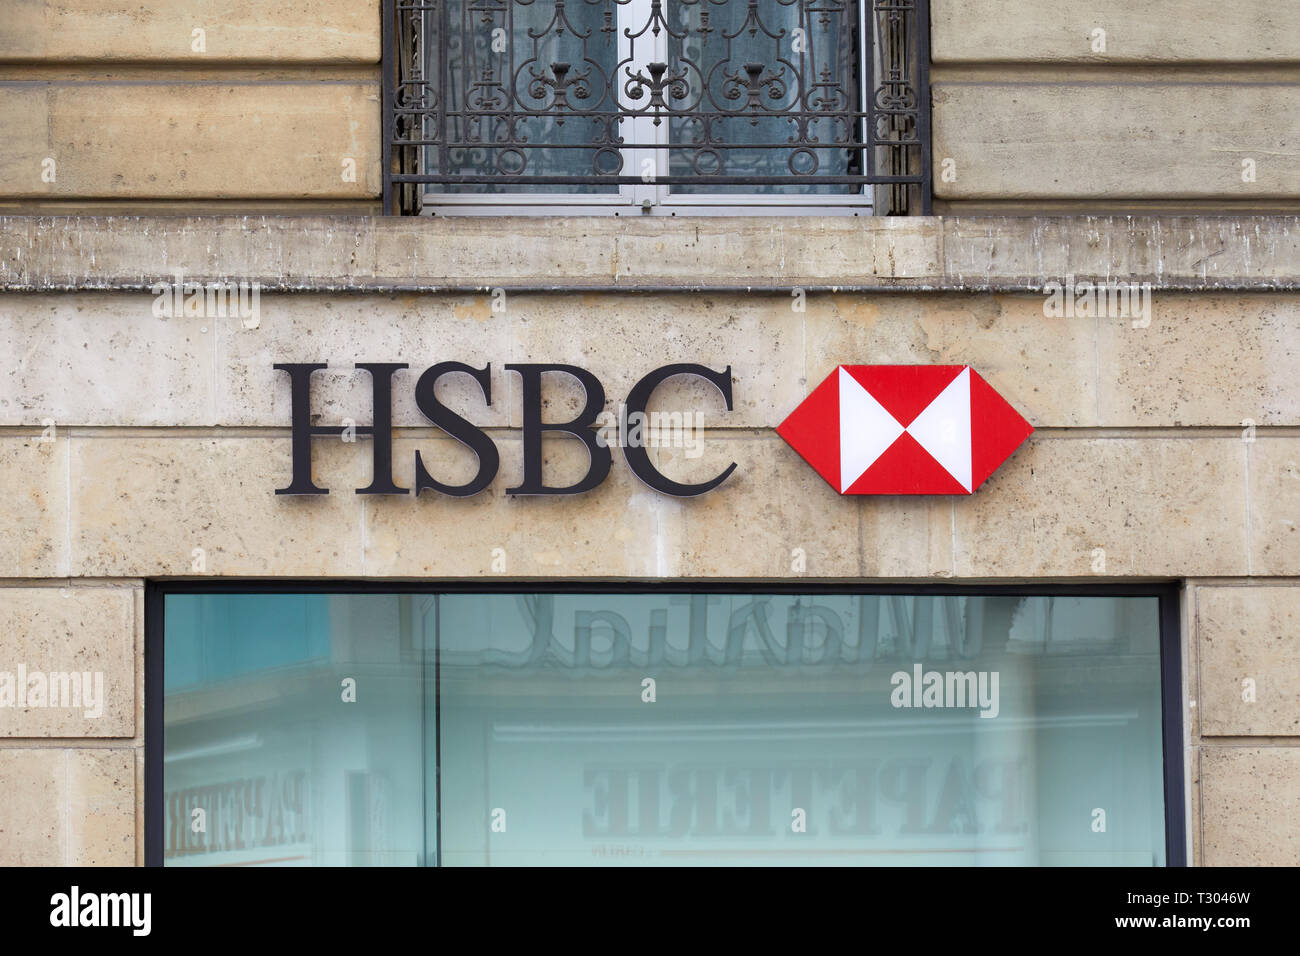 PARIS, FRANCE - JULY 23, 2017: HSBC bank sign and logo in Paris